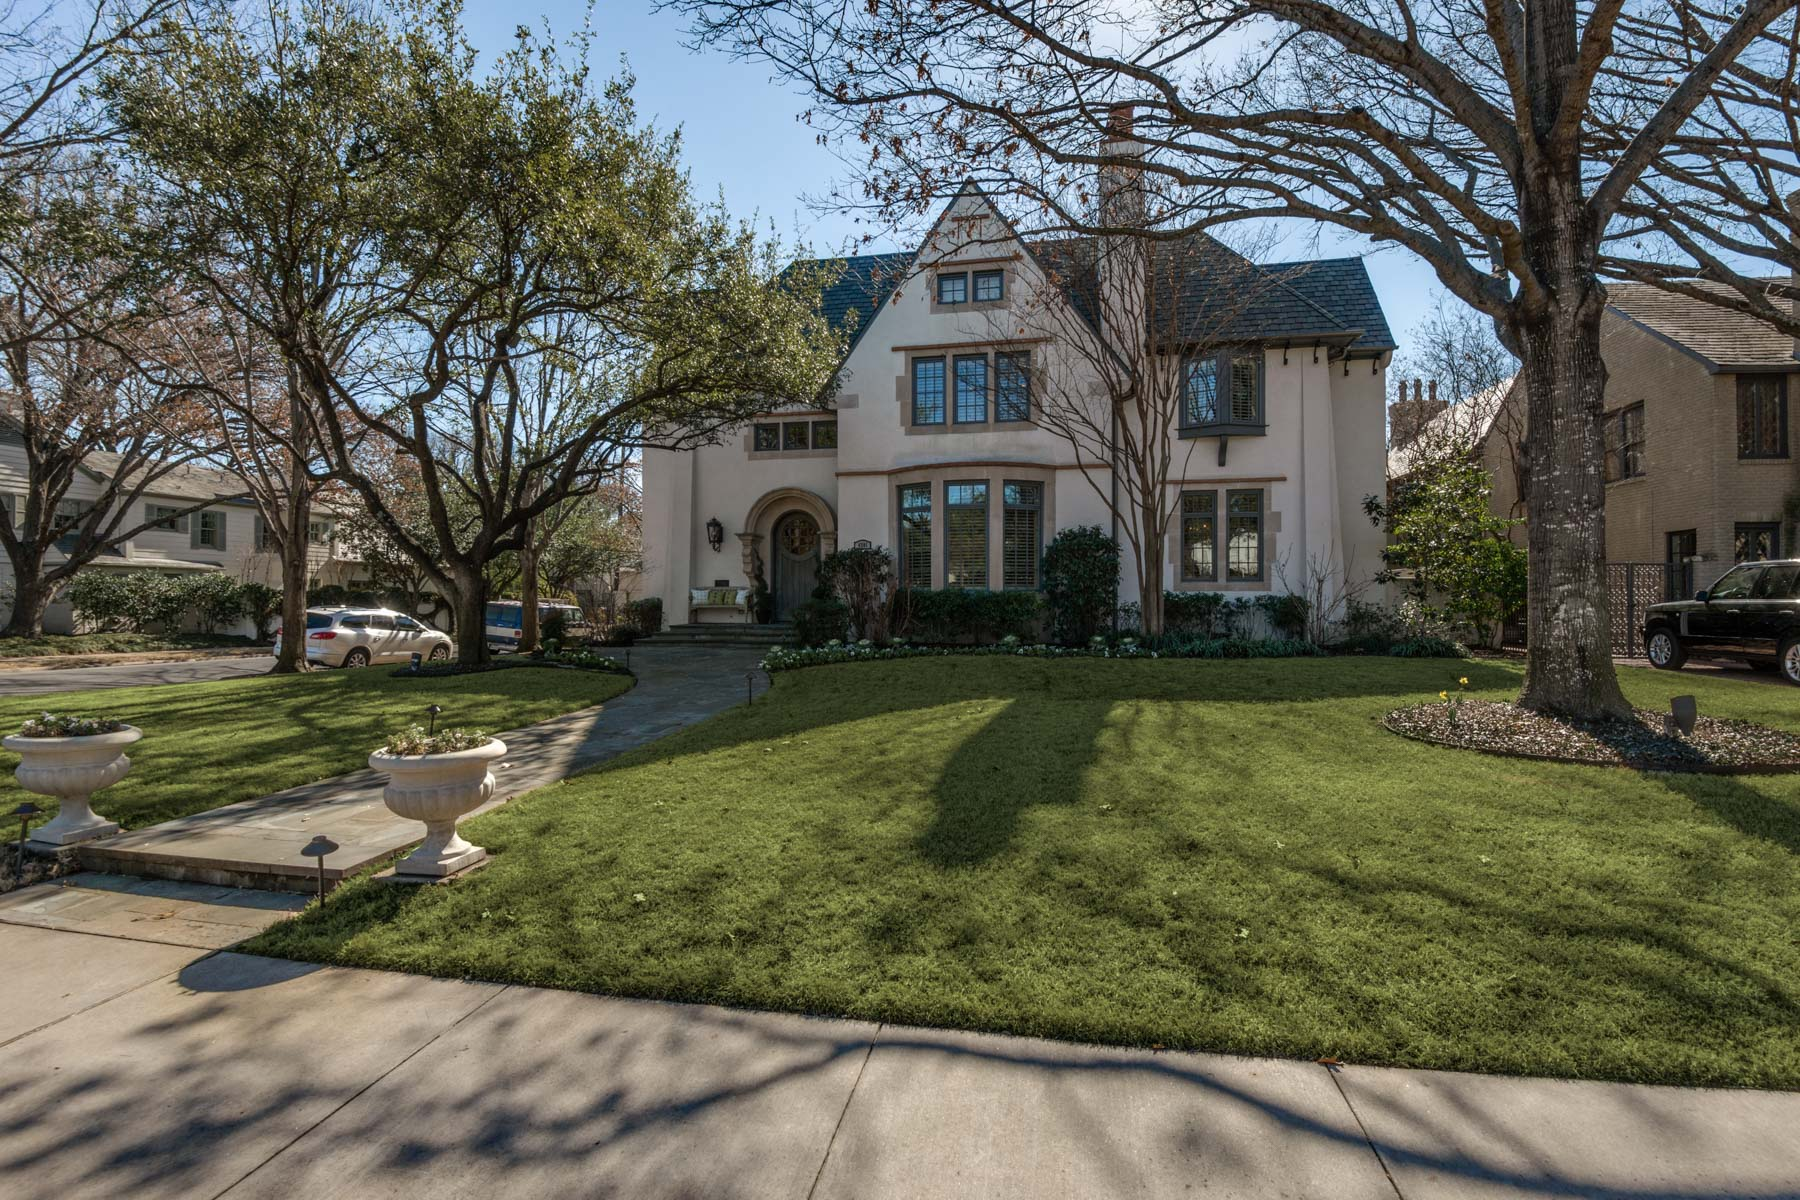 Single Family Home for Sale at Stellar Construction in Sterling Location 4201 Windsor Pkwy Dallas, Texas, 75205 United States